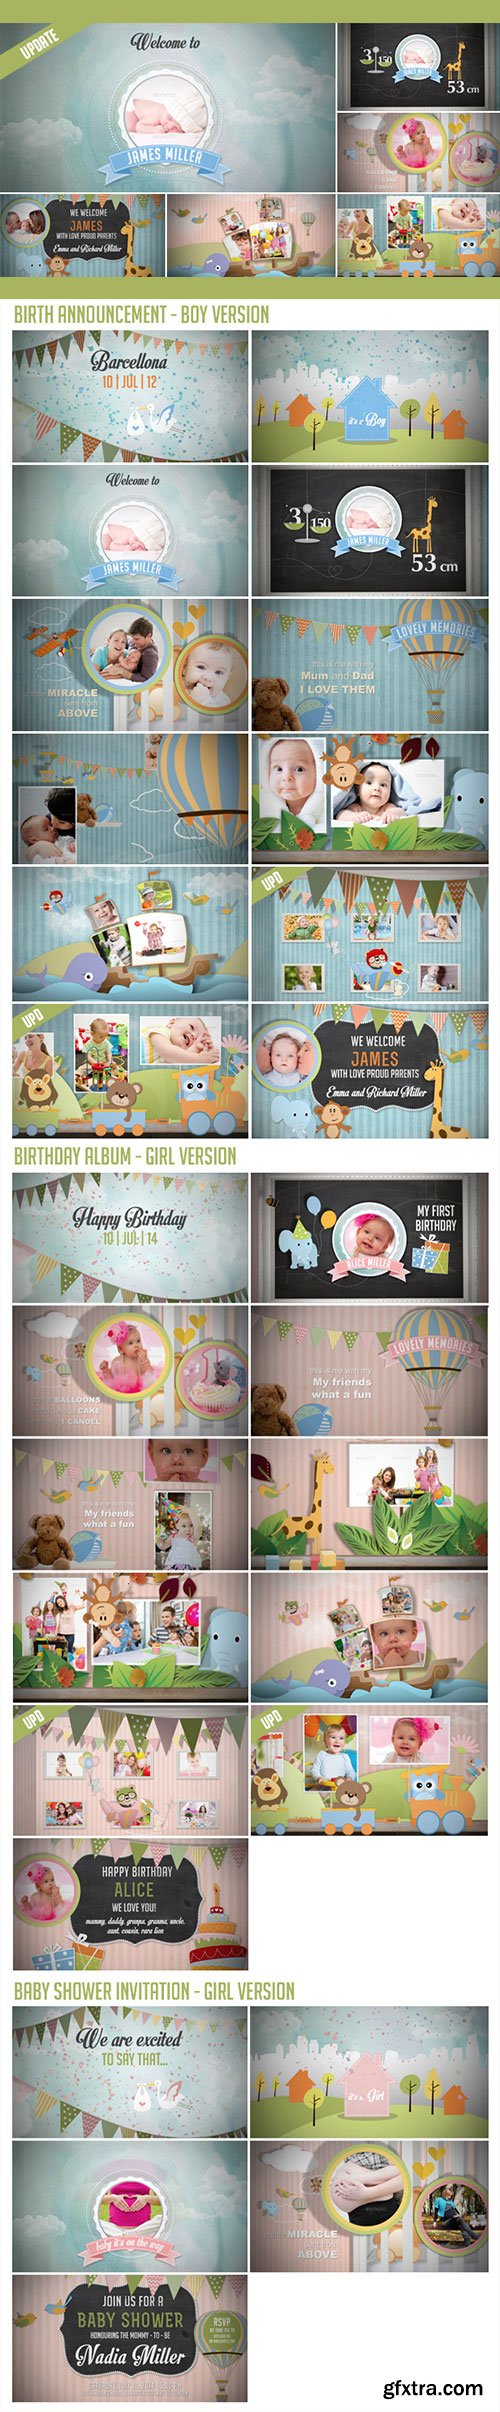 VideoHive - Birth Announcement - Baby Photo Album